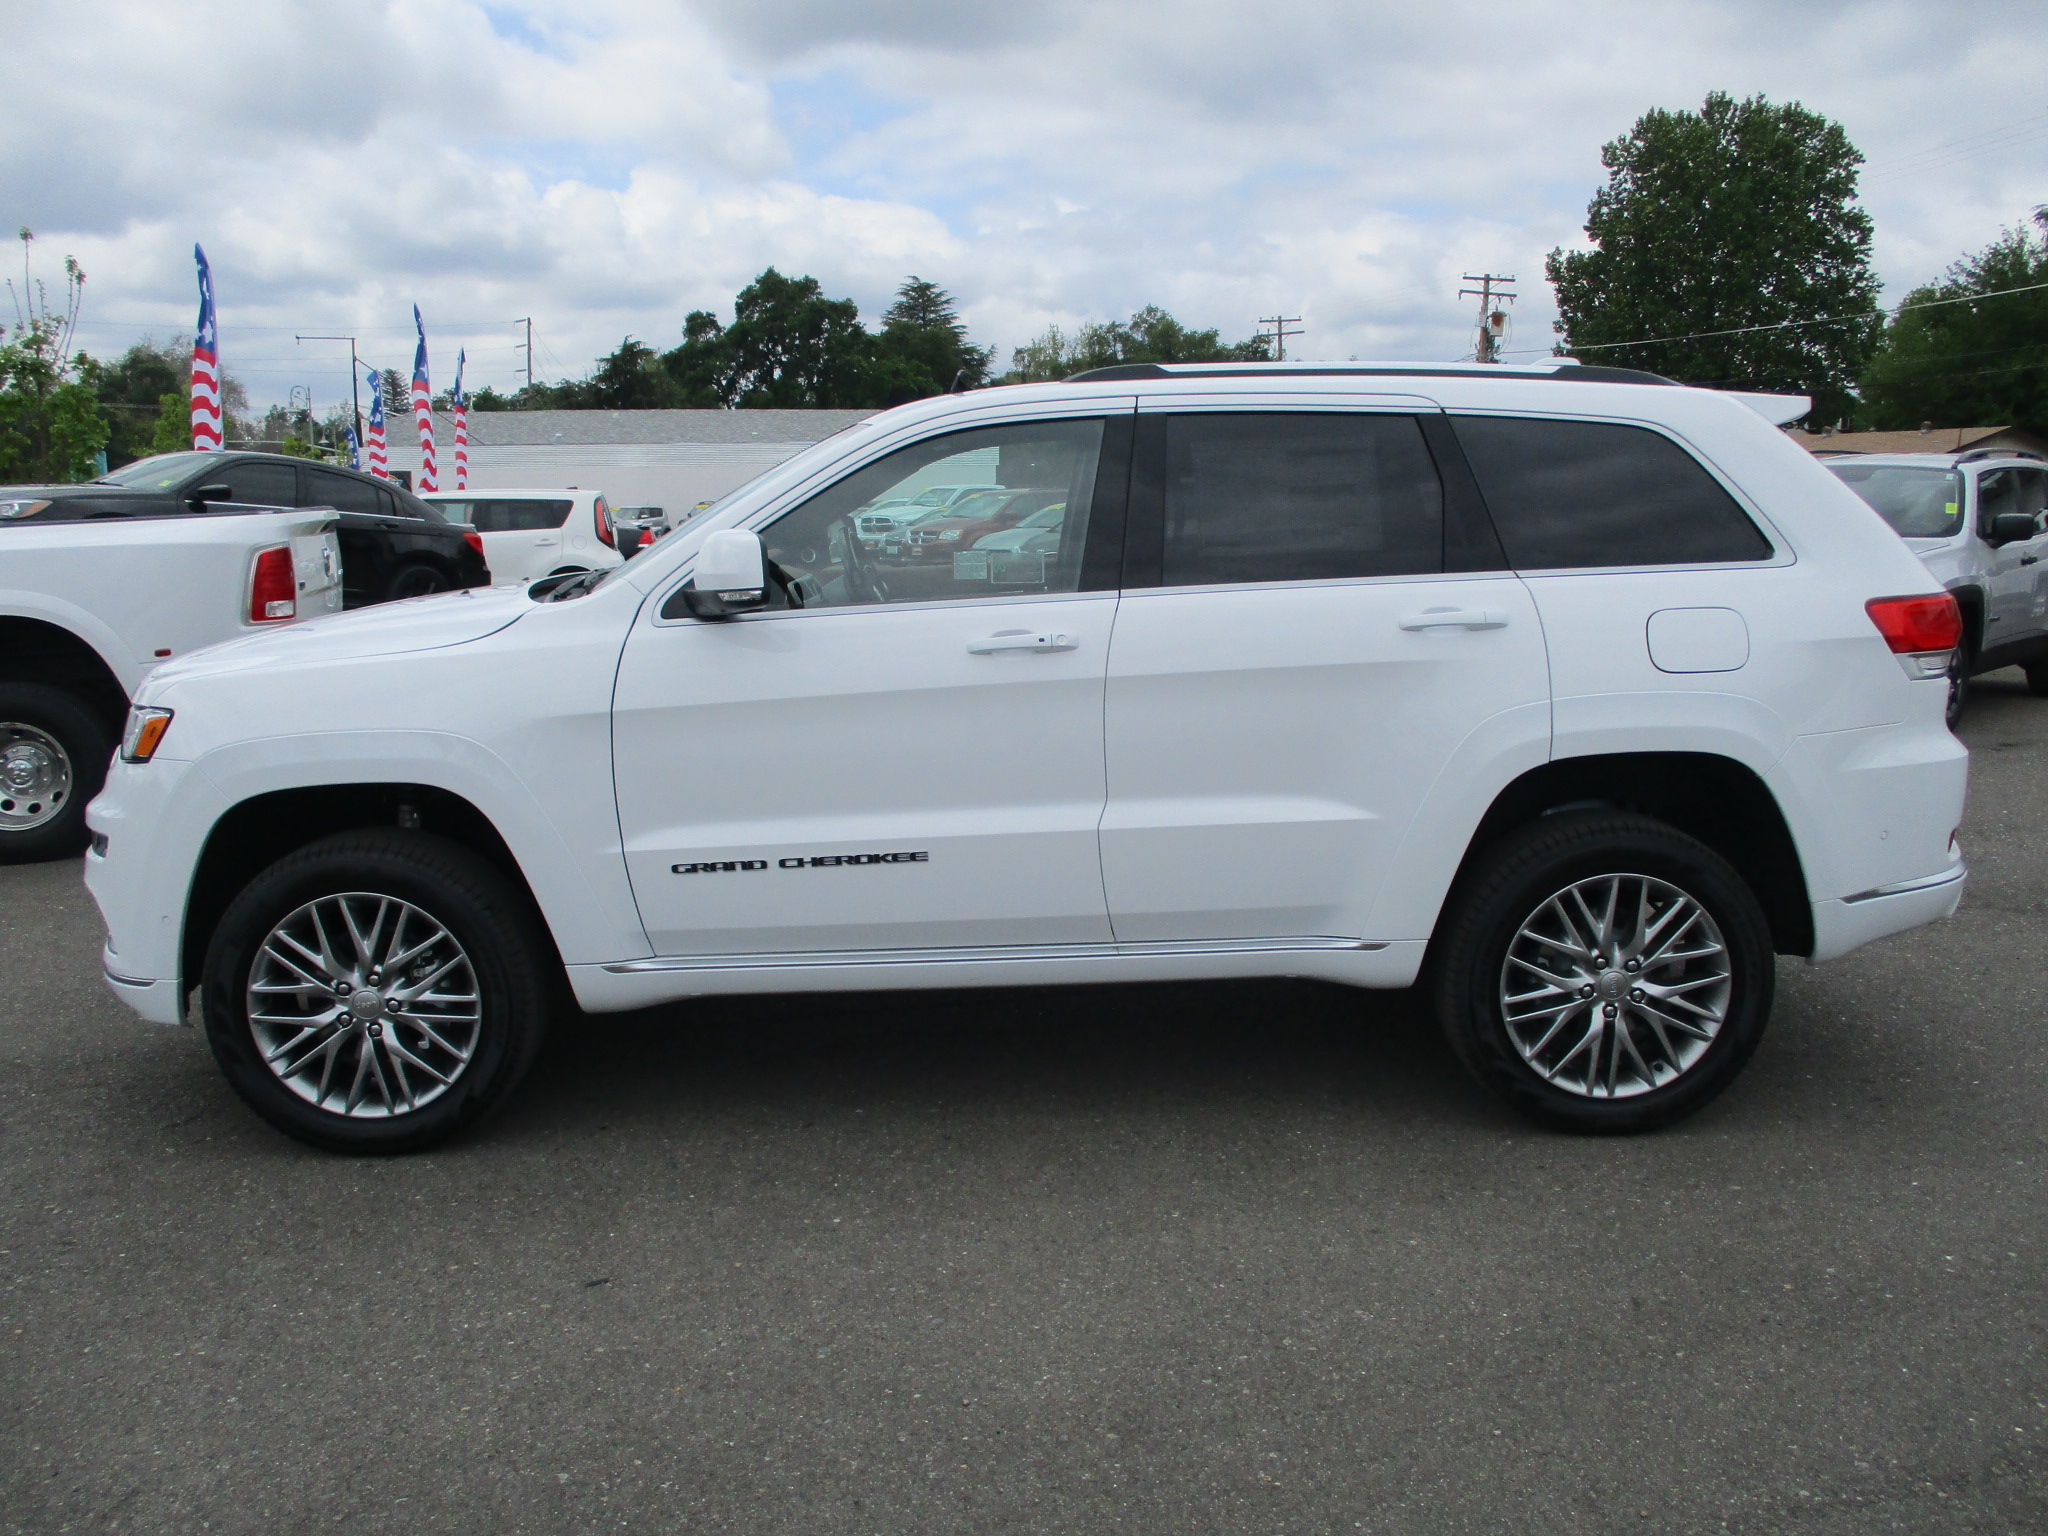 Jeep Grand Cherokee 2018 White >> New 2018 Jeep Grand Cherokee Summit 4X4 Sport Utility in ...